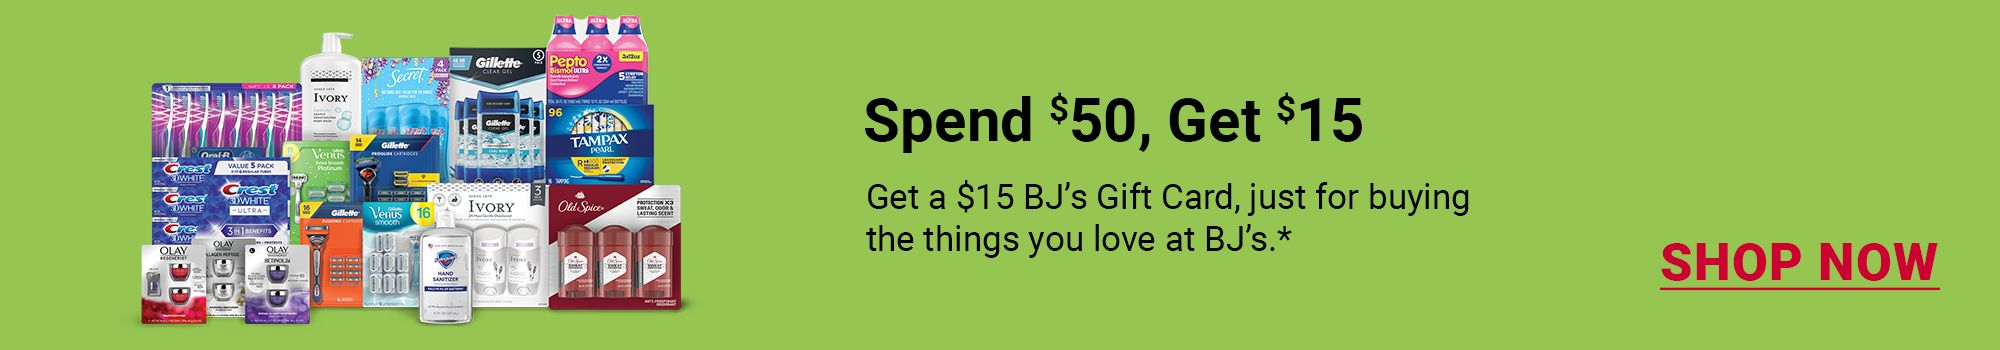 Spend $50, get $15. Get a $15 BJ's Gift Card, just for buying the things you love at BJ's. Click to shop now